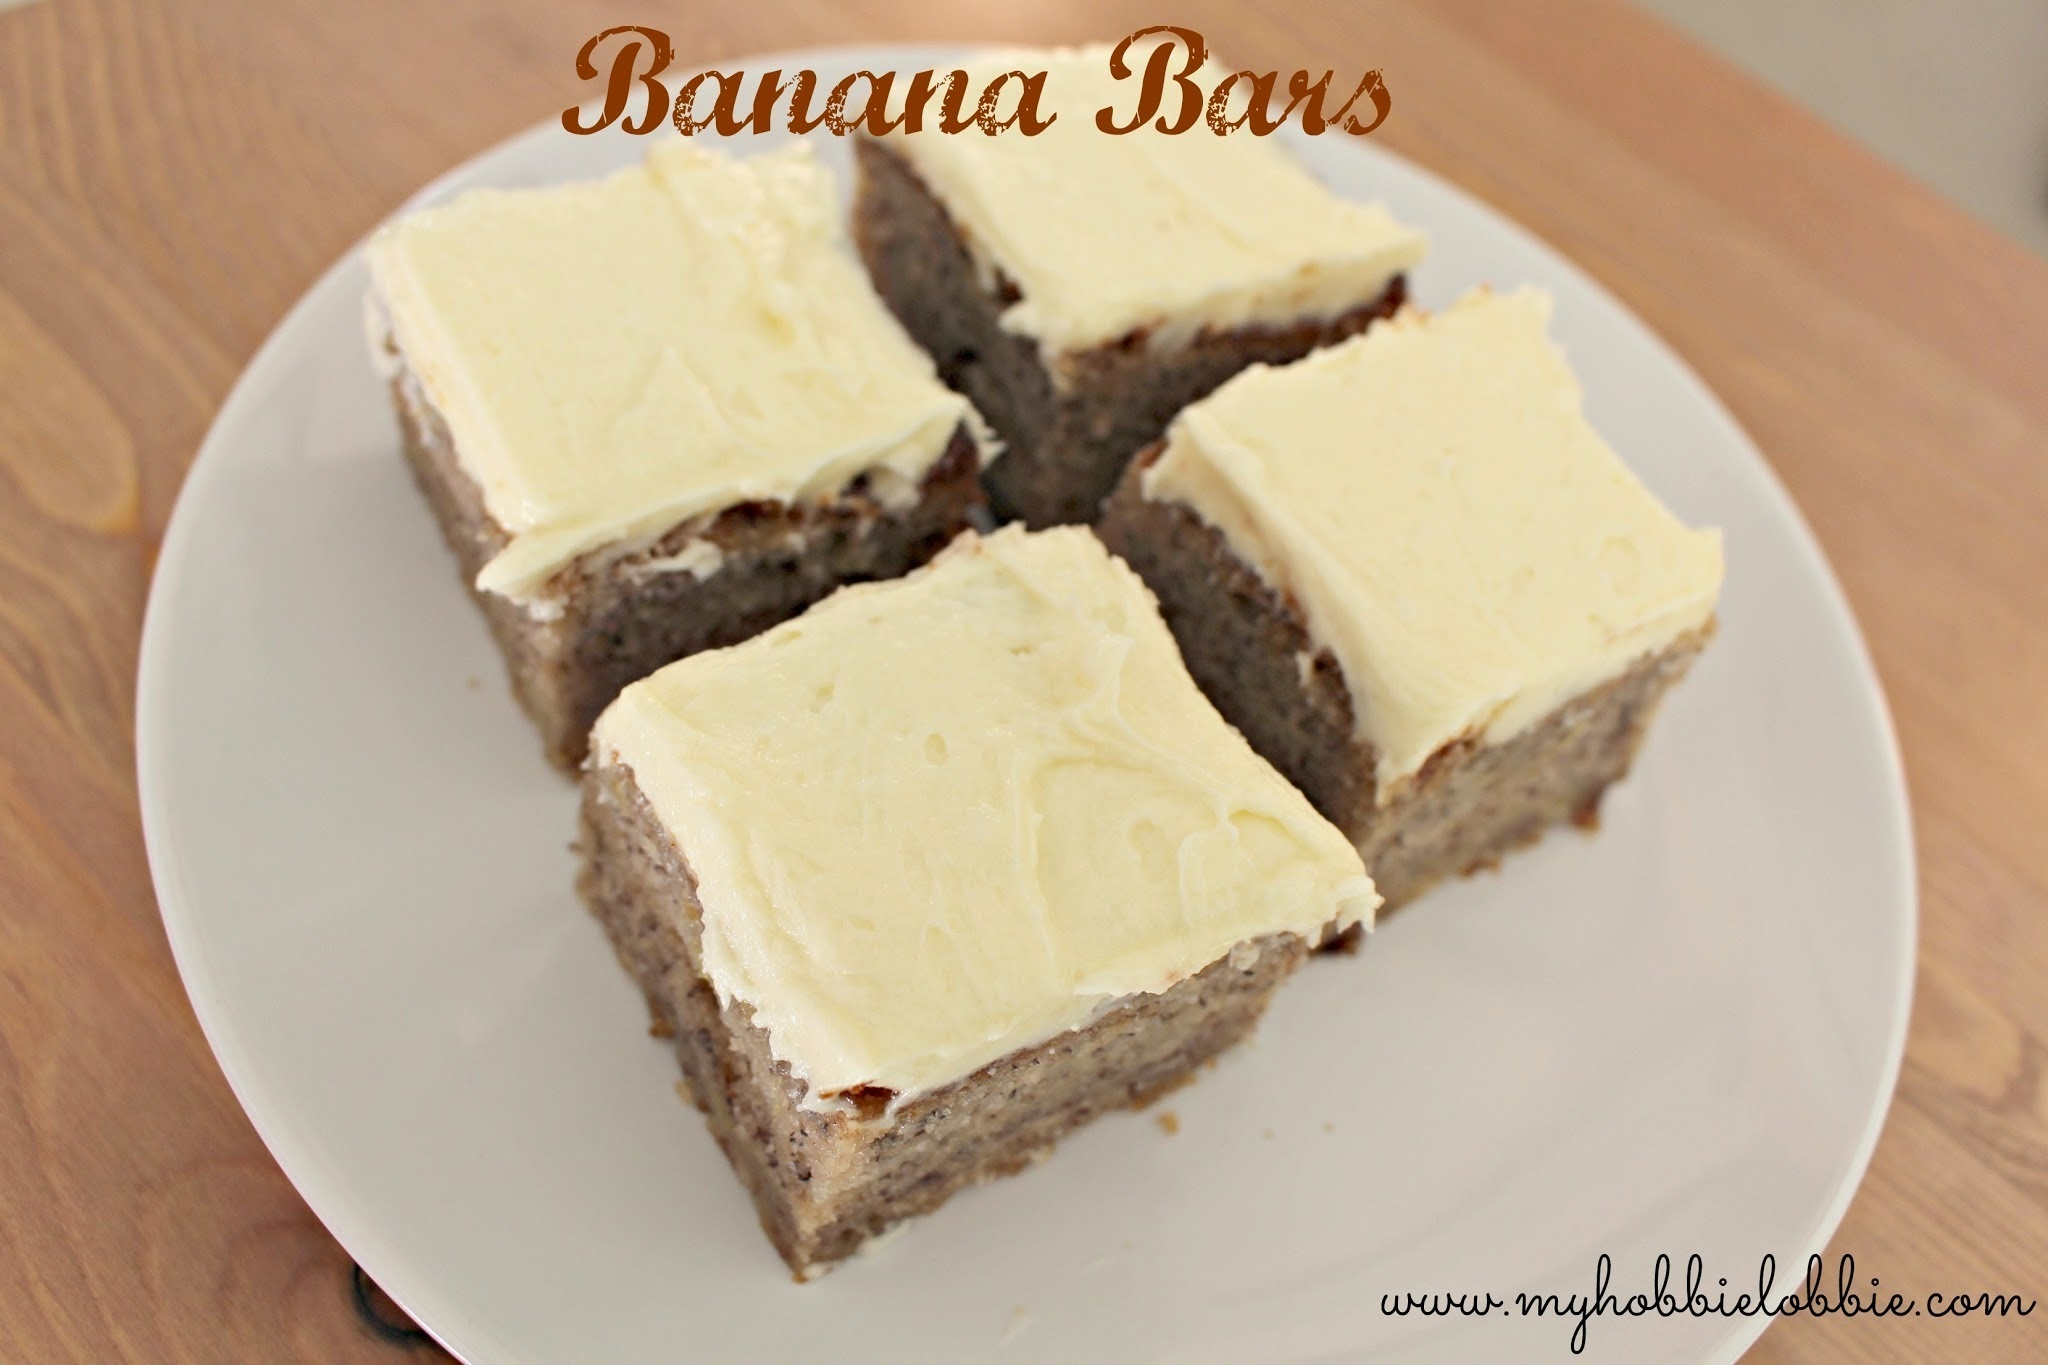 SRC: Banana Bars with Cream Cheese Frosting